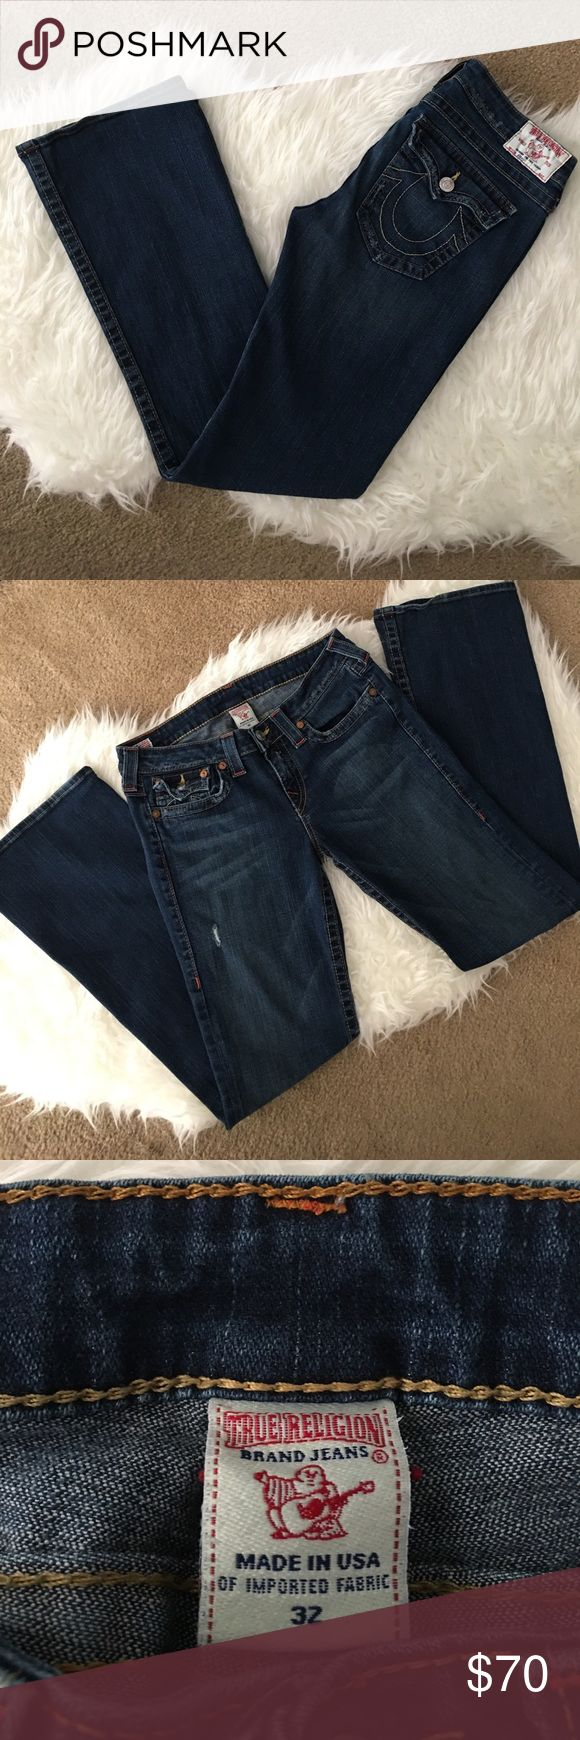 """💥Sale💥 True Religion 'Becky' Bootcut Jeans True Religion 'Becky' Bootcut Jeans Dark Wash.                                     - Excellent Condition; All pictures show little wear.                 - No fraying on bottom of hem or holes.                                - Size 32; Inseam 33"""", Rise 9"""".                                                 - See size chart for measurements.                                       - Open to offers or bundle to save additional $ or private discount. True…"""